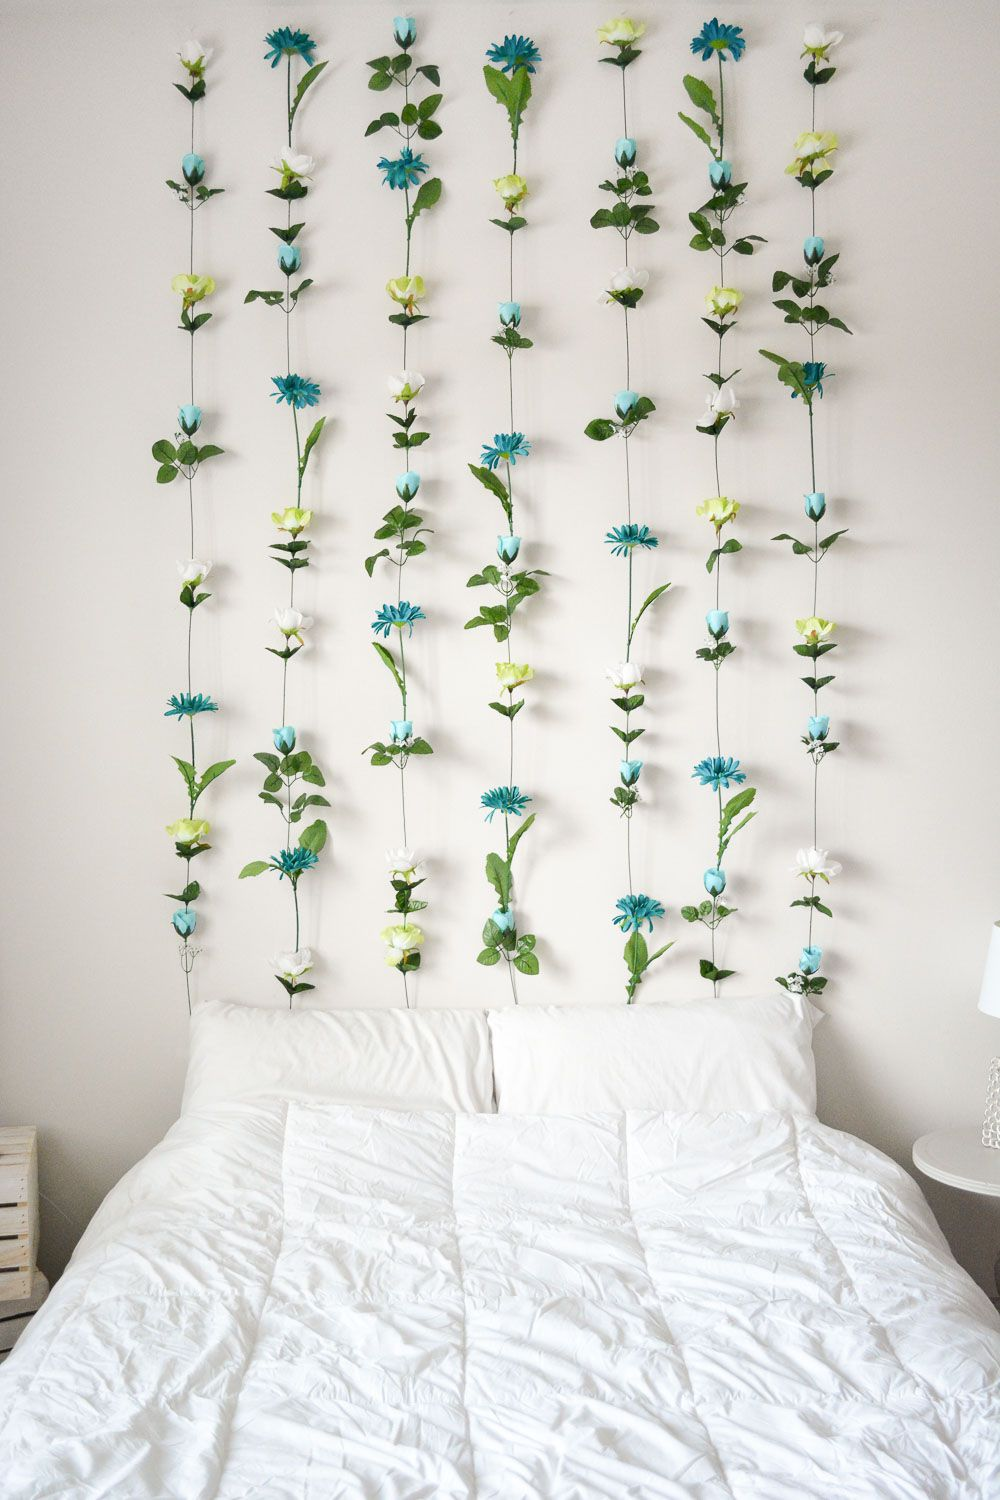 10 Idiot-Proof Ways To DIY Your Wall Decor